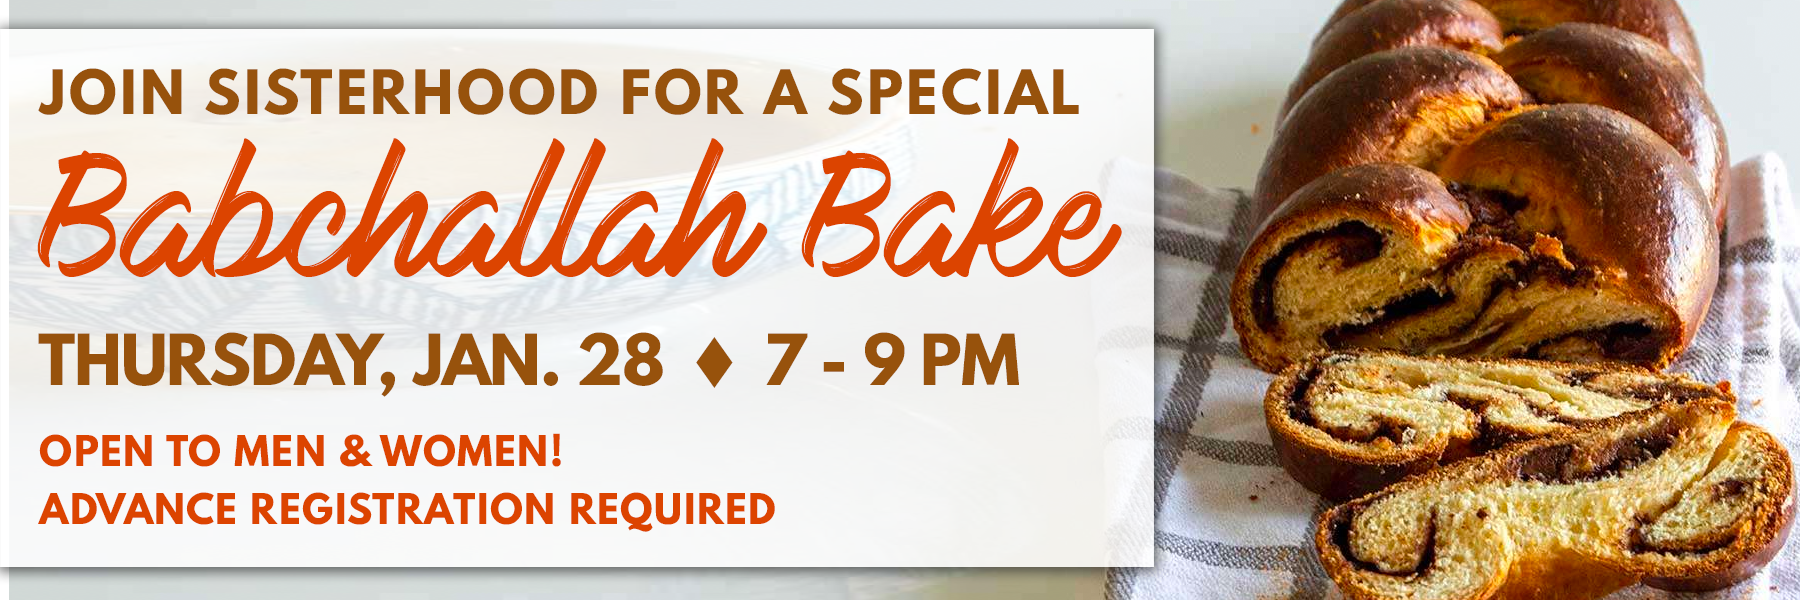 """<a href=""""https://www.barnerttemple.org/event/january2021challahbake""""                                     target=""""_blank"""">                                                                 <span class=""""slider_title"""">                                     If Challah & Babka Got Married                                </span>                                                                 </a>                                                                                                                                                                                       <span class=""""slider_description"""">Join us for a sweet and chocolatey babchallah bake (the marriage of babka and challah)! This one is sure to please.  Click above to register.</span>"""